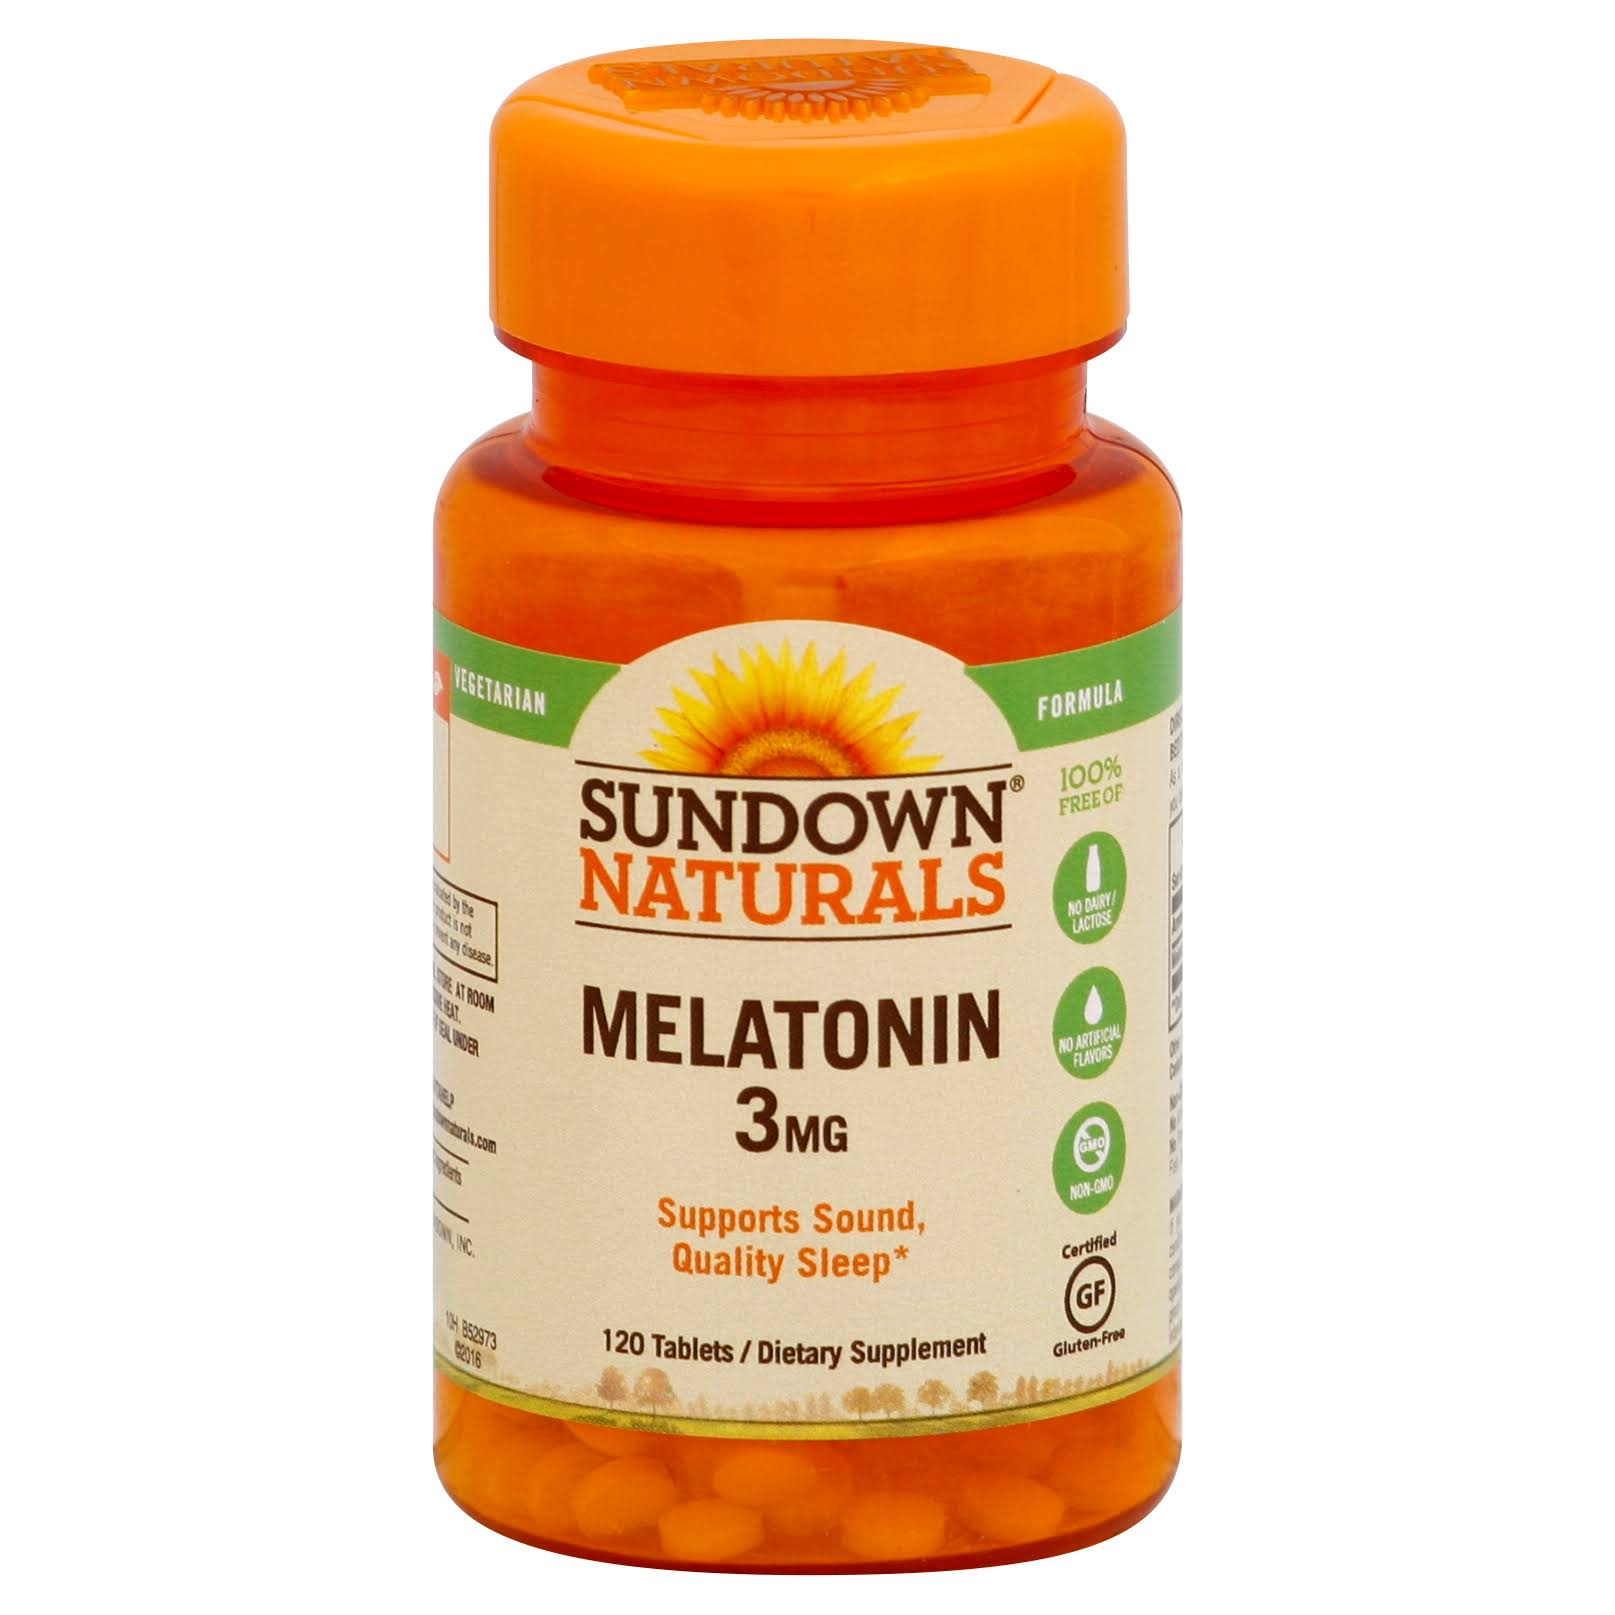 Sundown Naturals Melatonin Dietary Supplement - 120 Tablets